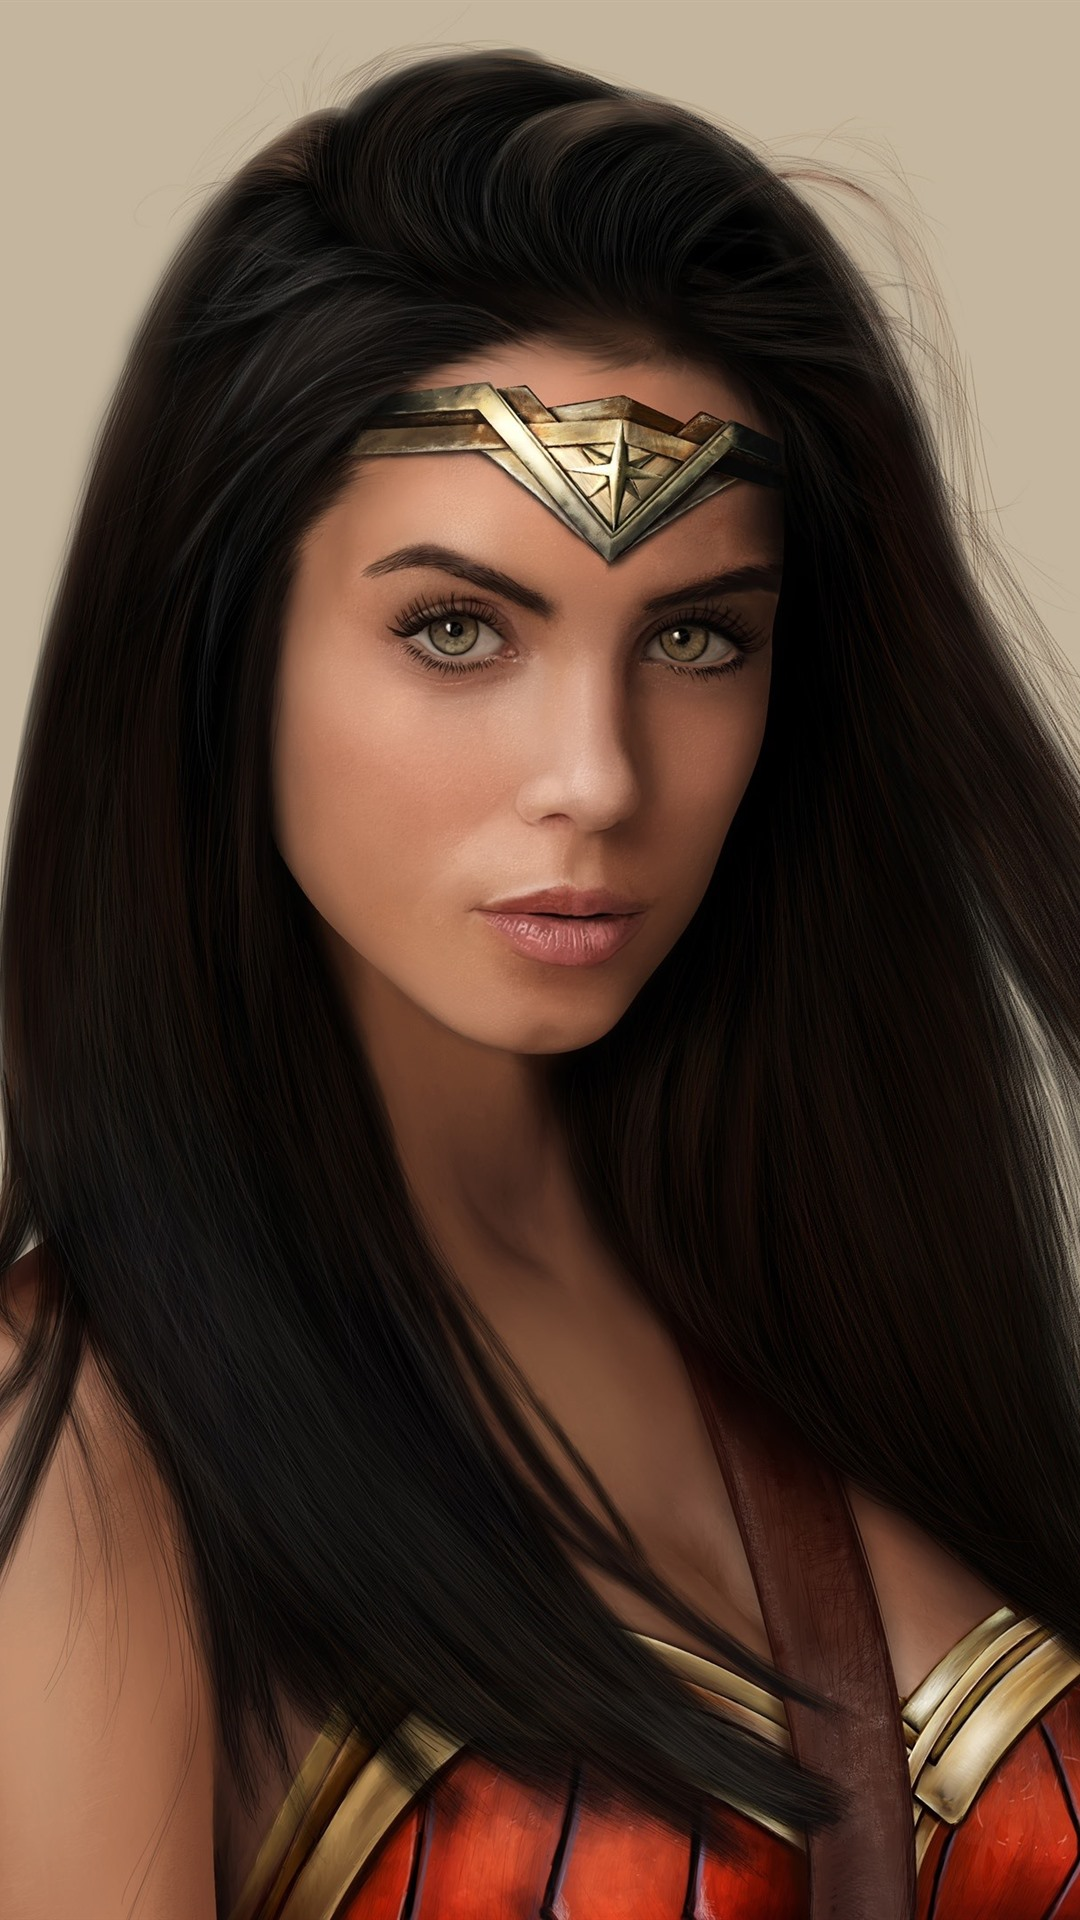 Wonder Woman Superhero Long Hair 1080x1920 Iphone 8 7 6 6s Plus Wallpaper Background Picture Image